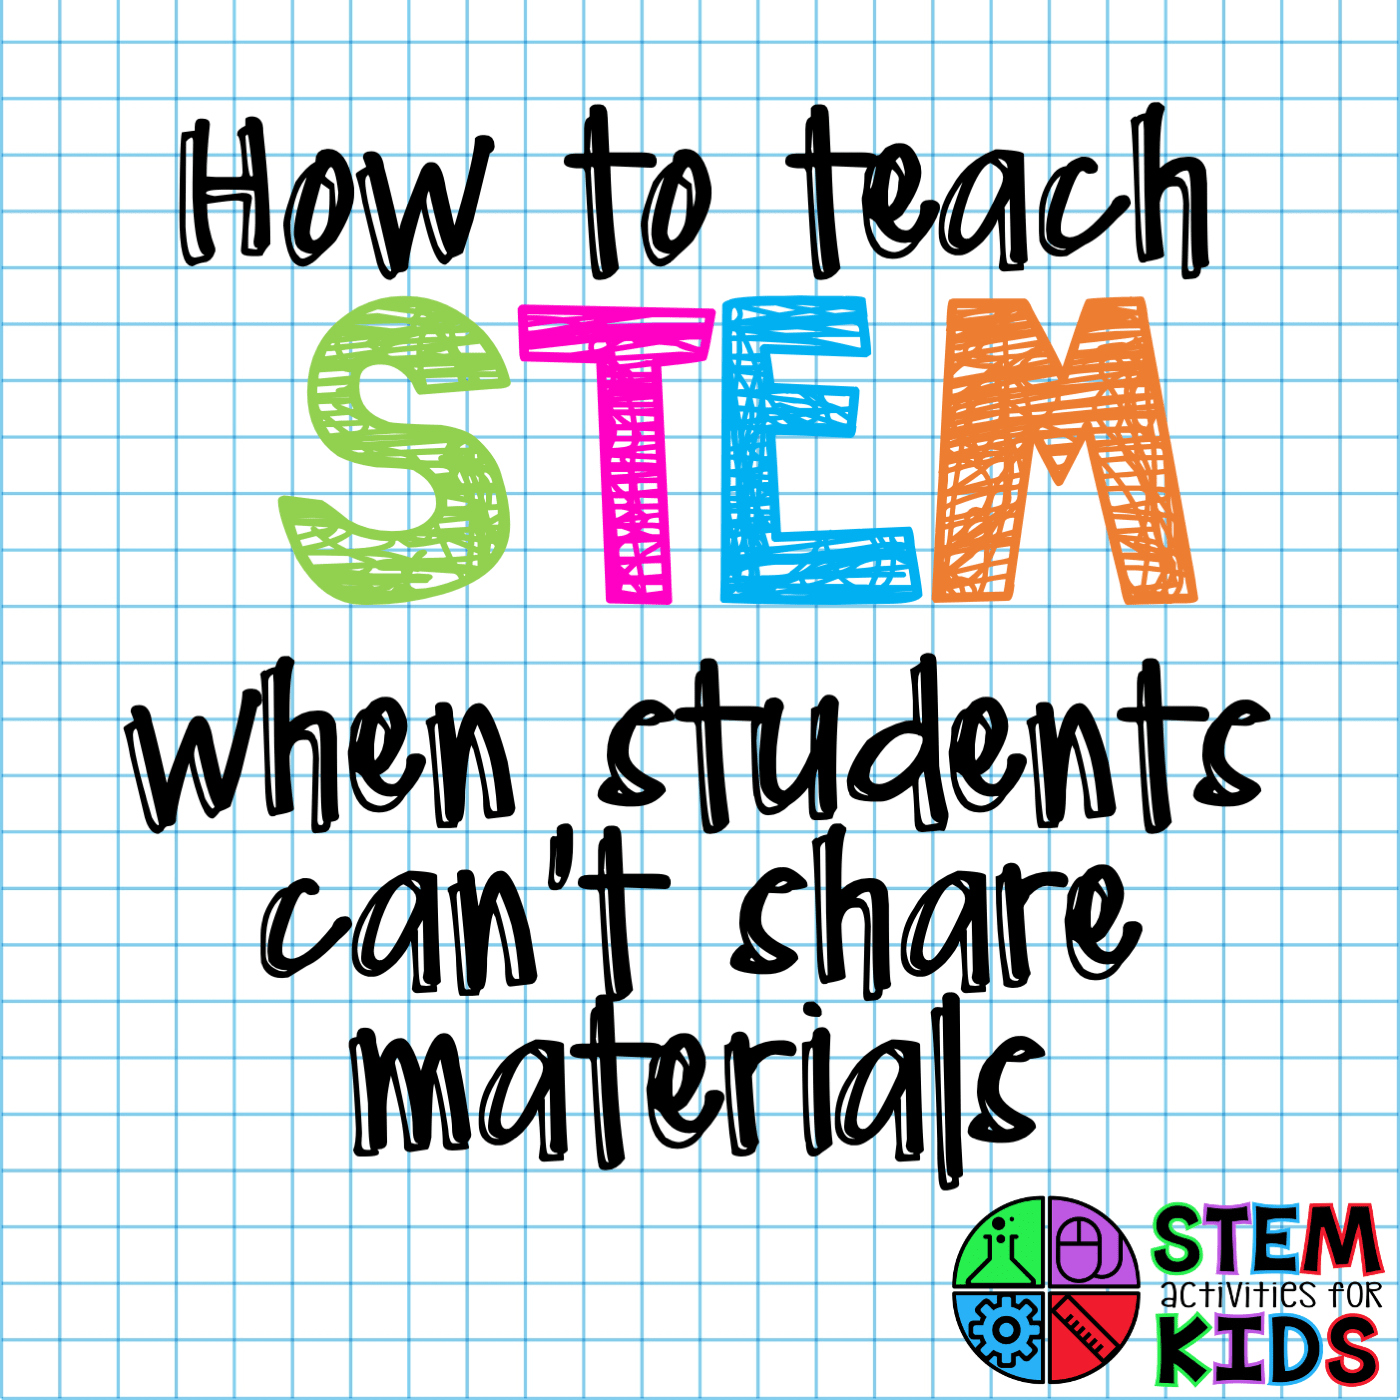 medium resolution of STEM Without Sharing Materials - STEM Activities for Kids